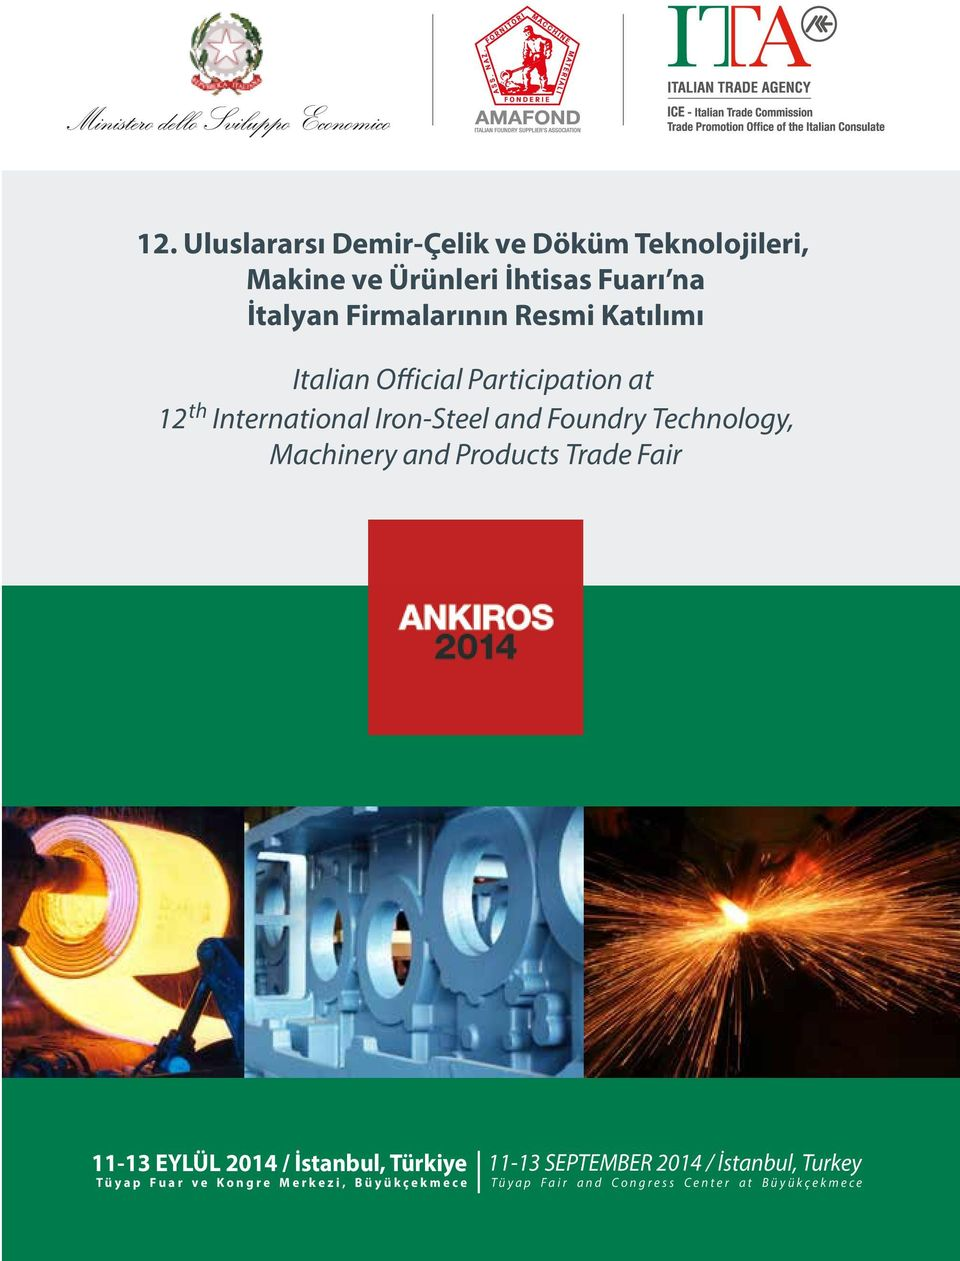 Foundry Technology, Machinery and Products Trade Fair 11-13 EYLÜL 2014 / İstanbul, Türkiye Tüyap Fuar